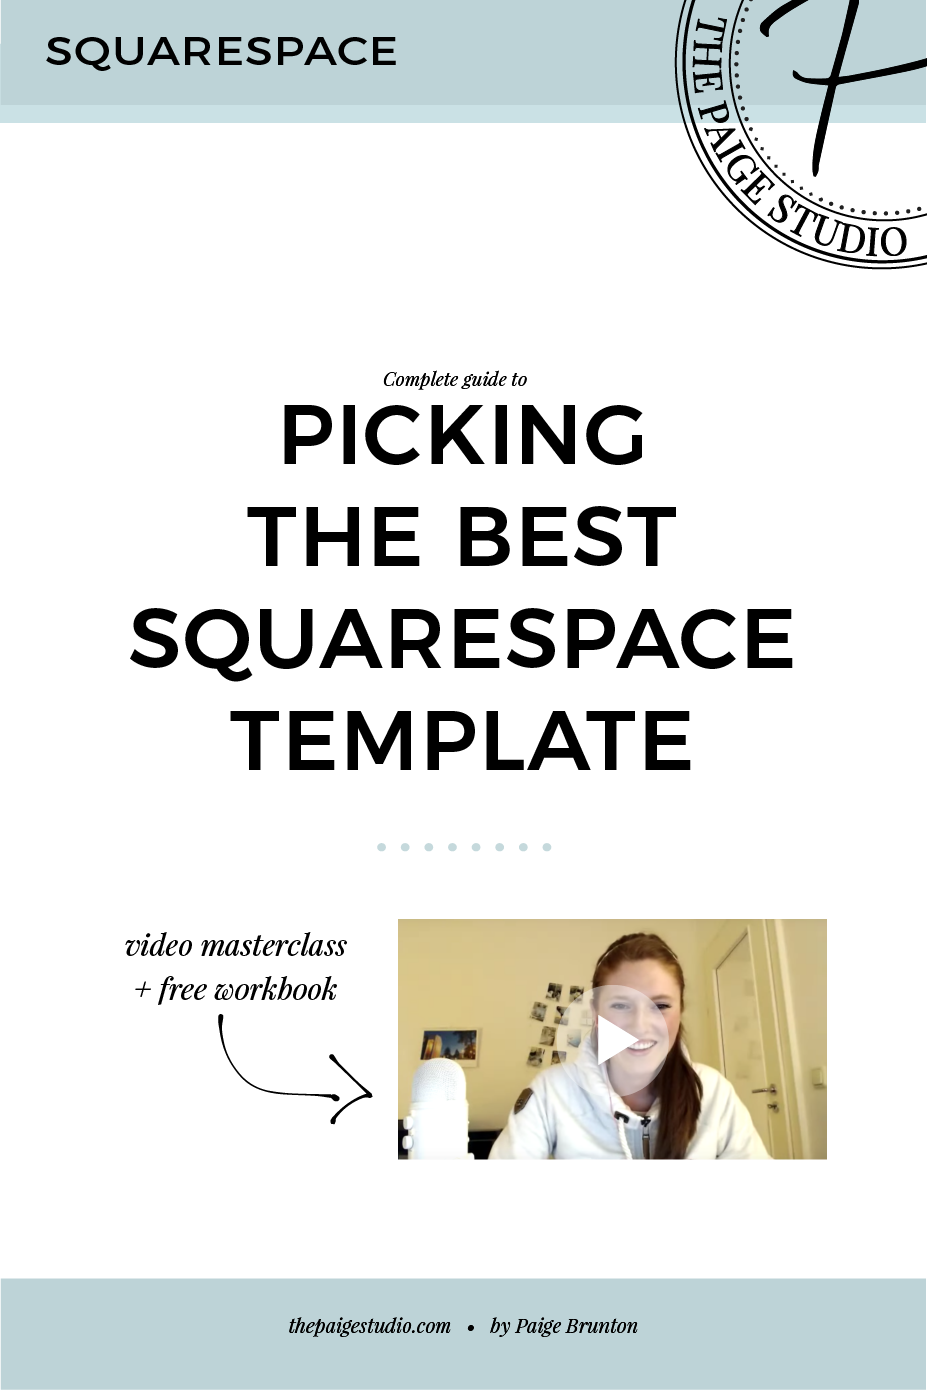 Complete guide to picking the best Squarespace template-67.png